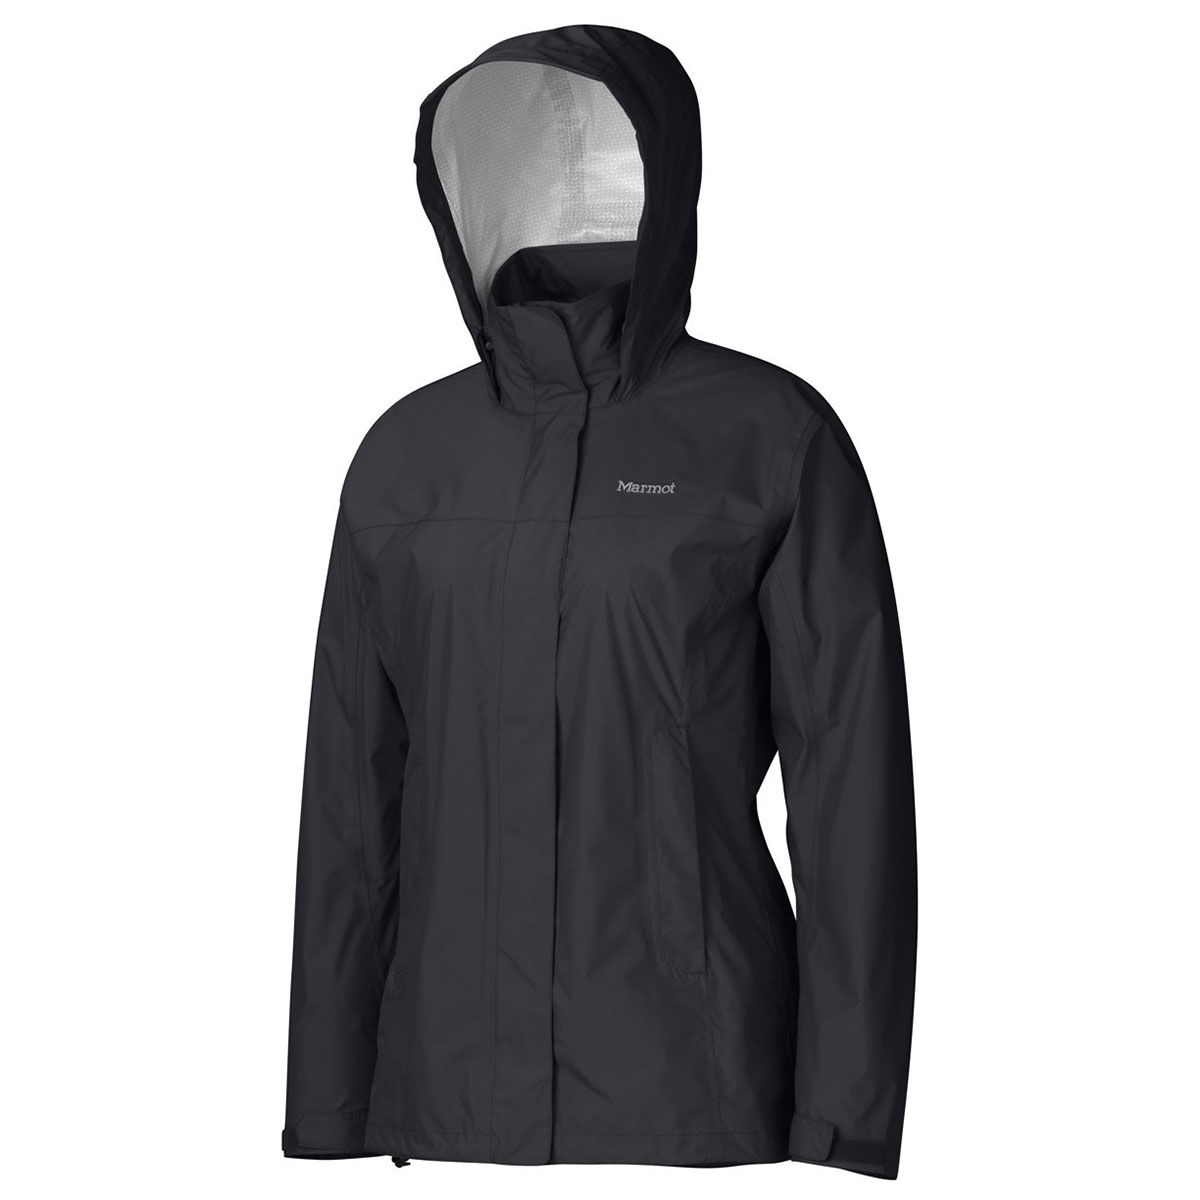 Marmot Women's Precip Jacket - Black, L